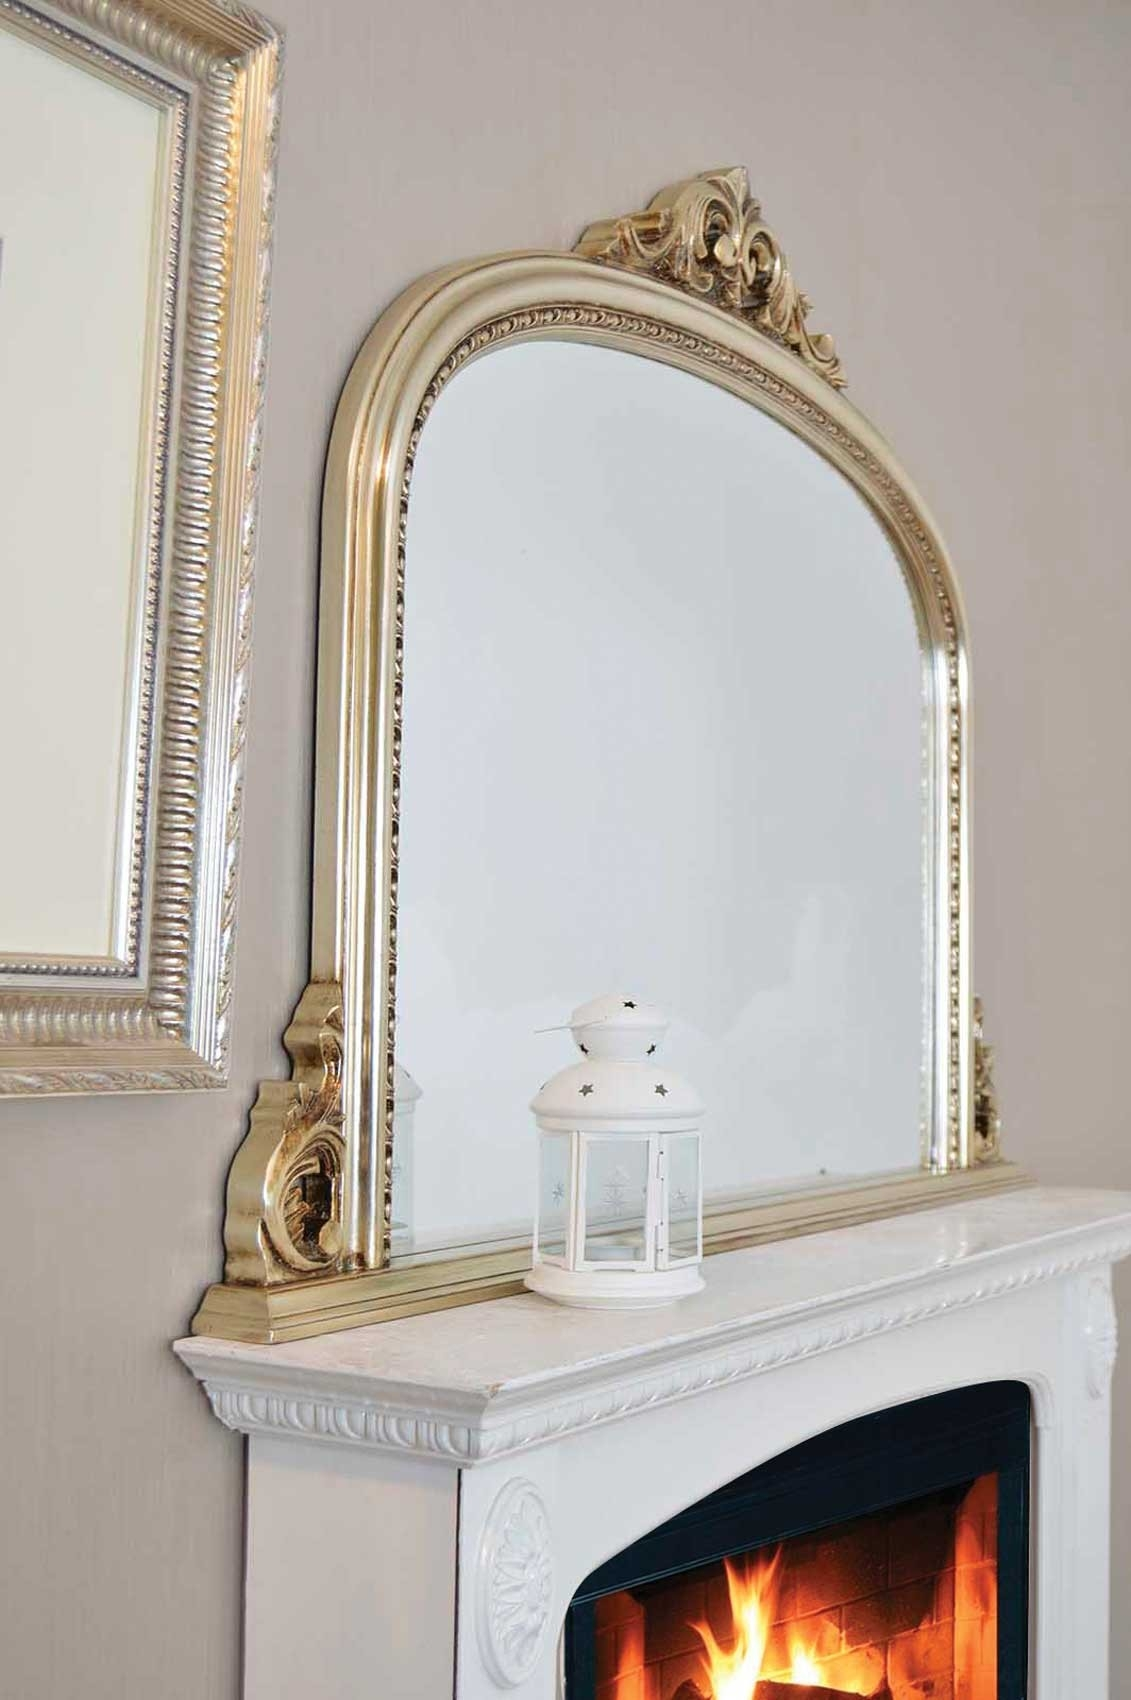 Large Champagne Silver Antique Over Mantle Wall Mirror 4ft2 X 3ft Inside Mantlepiece Mirrors (Image 7 of 15)